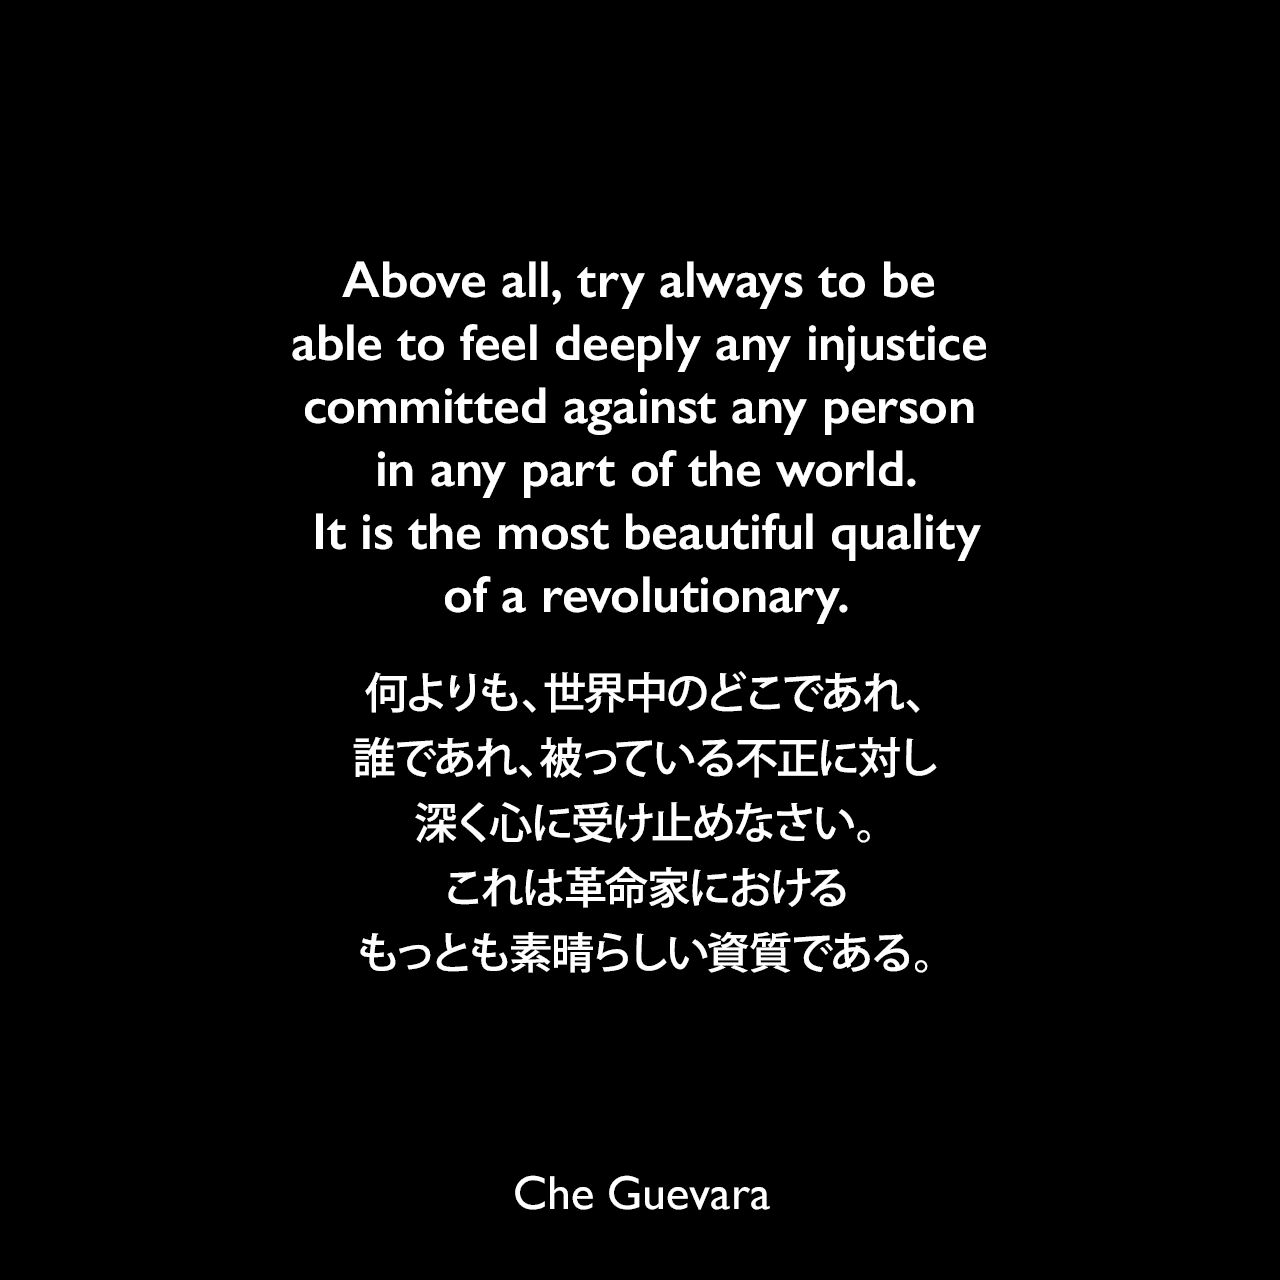 Above all, try always to be able to feel deeply any injustice committed against any person in any part of the world. It is the most beautiful quality of a revolutionary.何よりも、世界中のどこであれ、誰であれ、被っている不正に対し深く心に受け止めなさい。これは革命家におけるもっとも素晴らしい資質である。- 1965年にチェ・ゲバラが彼の子供達に宛てた手紙「パパからの最後の手紙」よりChe Guevara